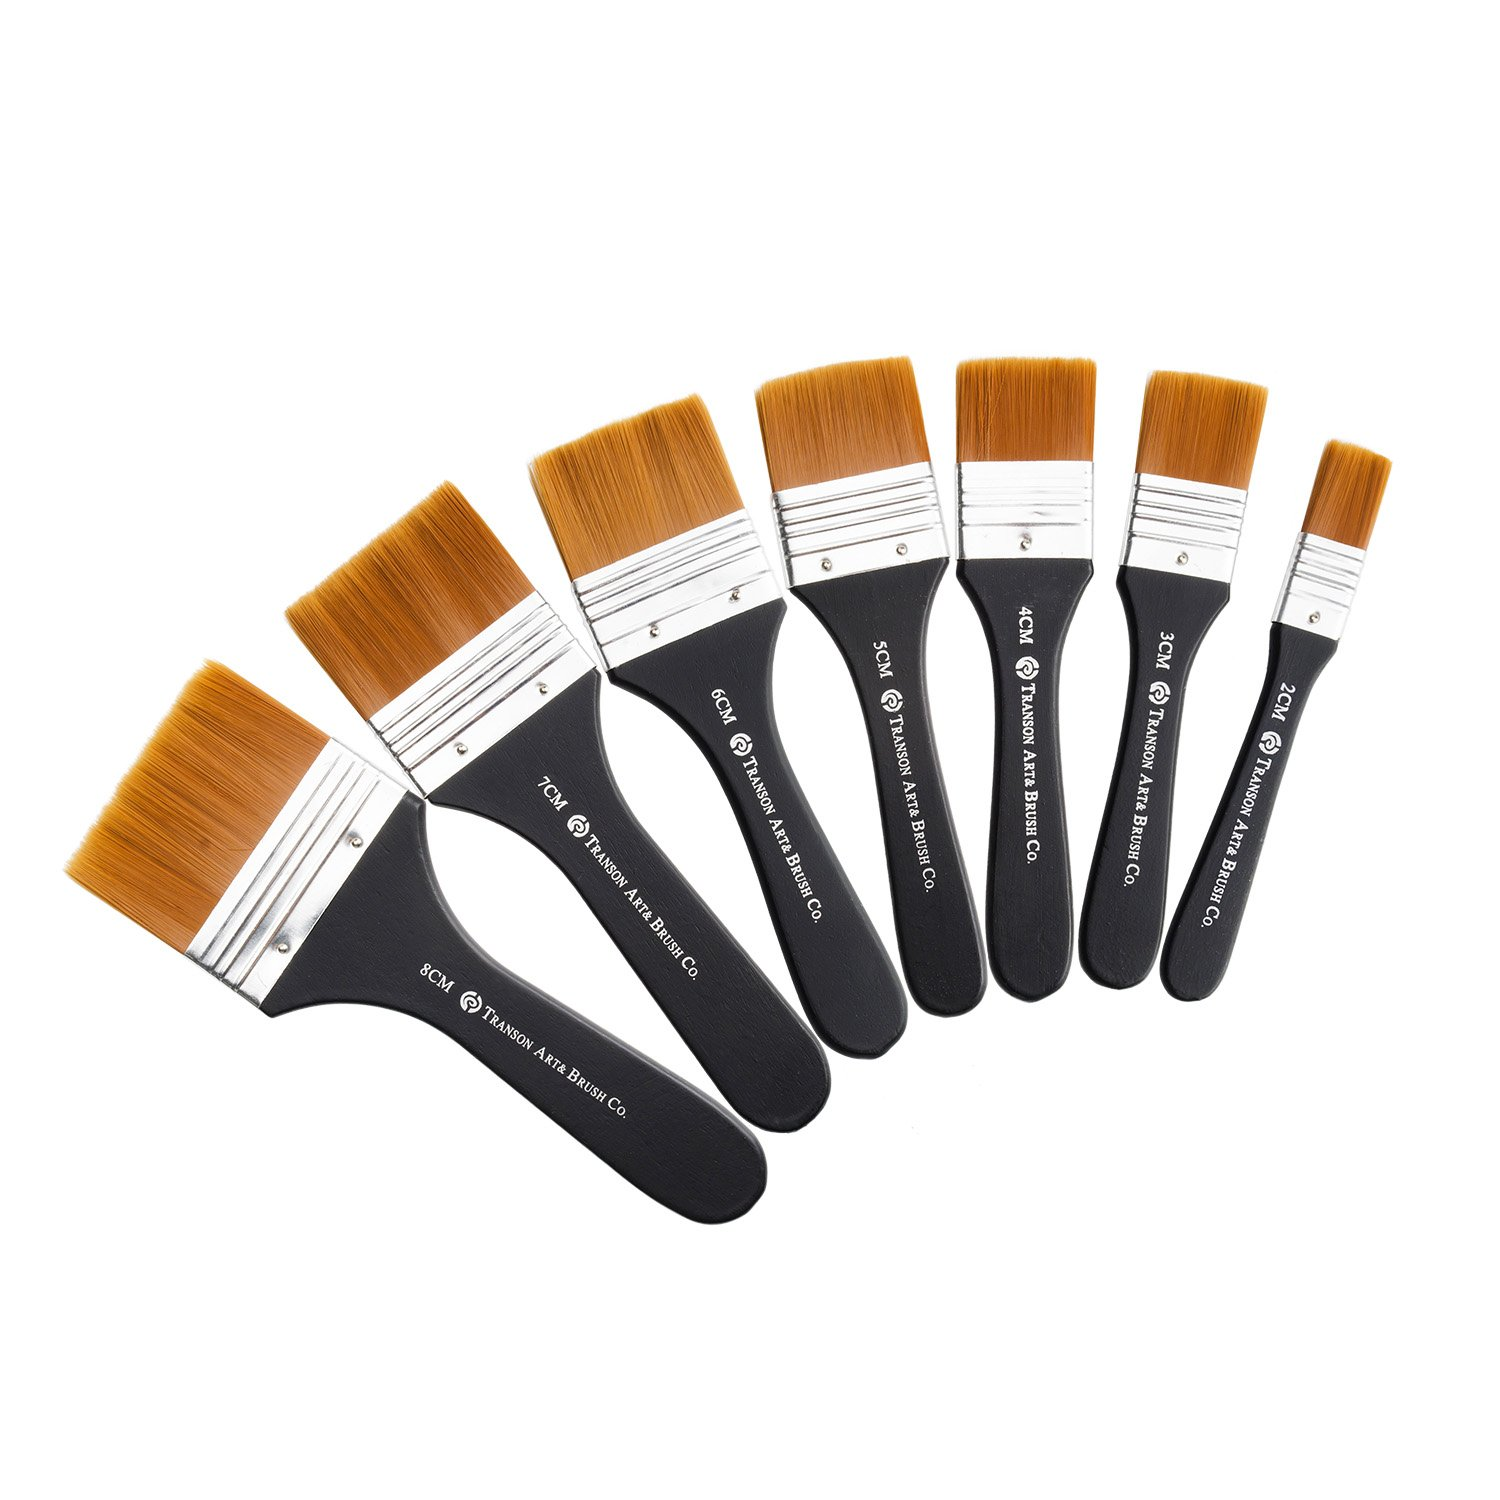 Lightwish Set of 7 Flat Paint Brushes for Applying Gesso, Acrylic paint, Oil paint, Watercolor by Lightwish